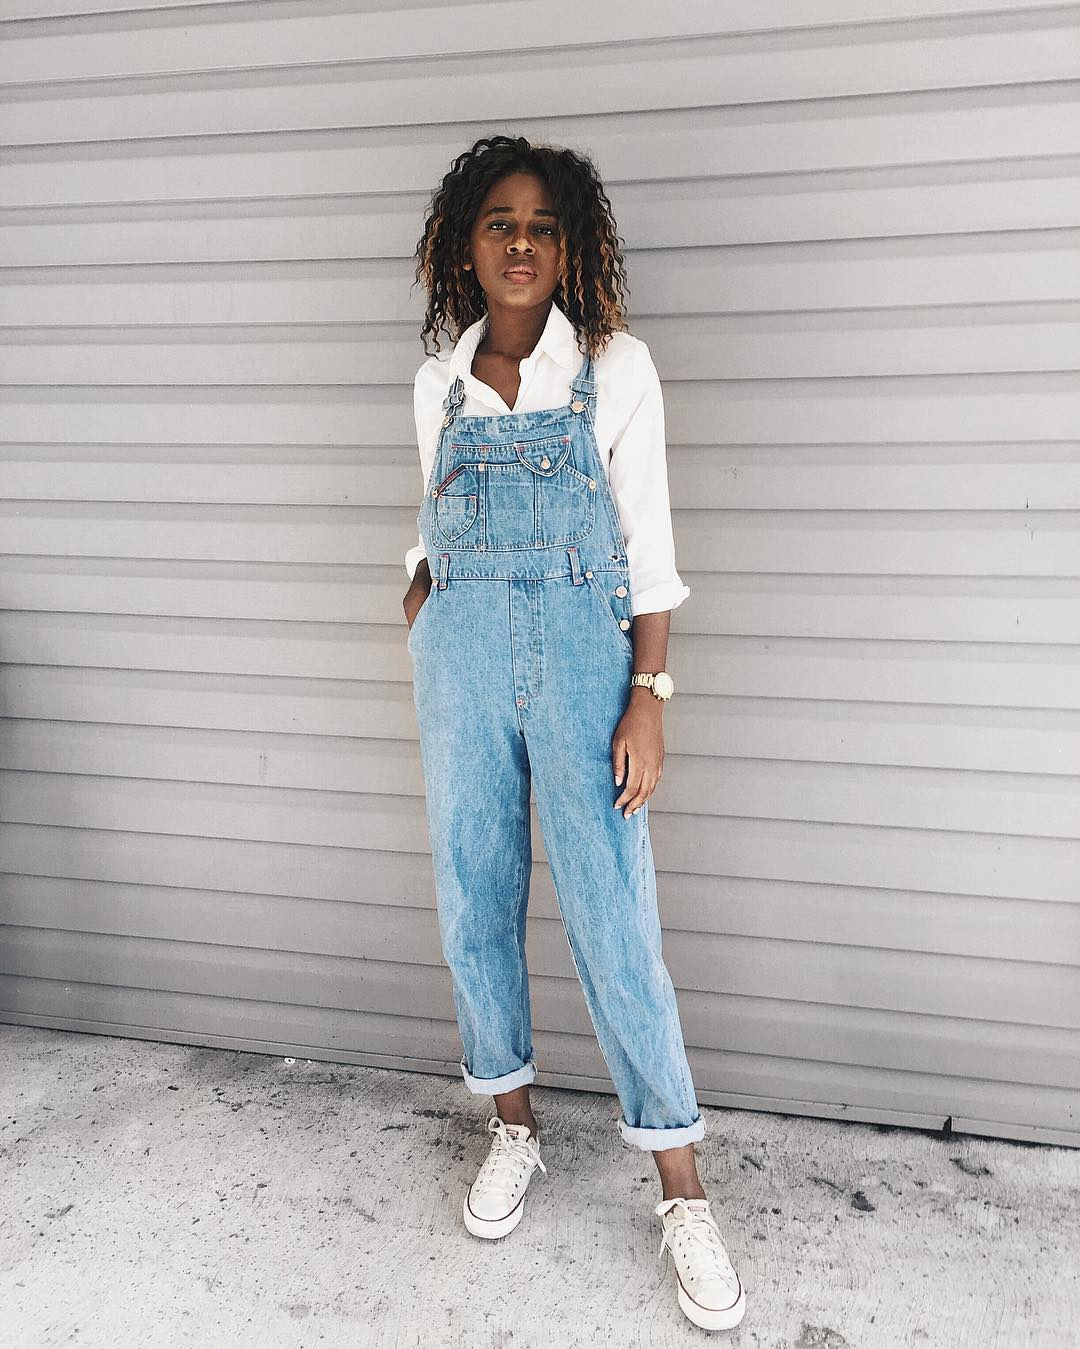 Overalls Outfit With White Converse